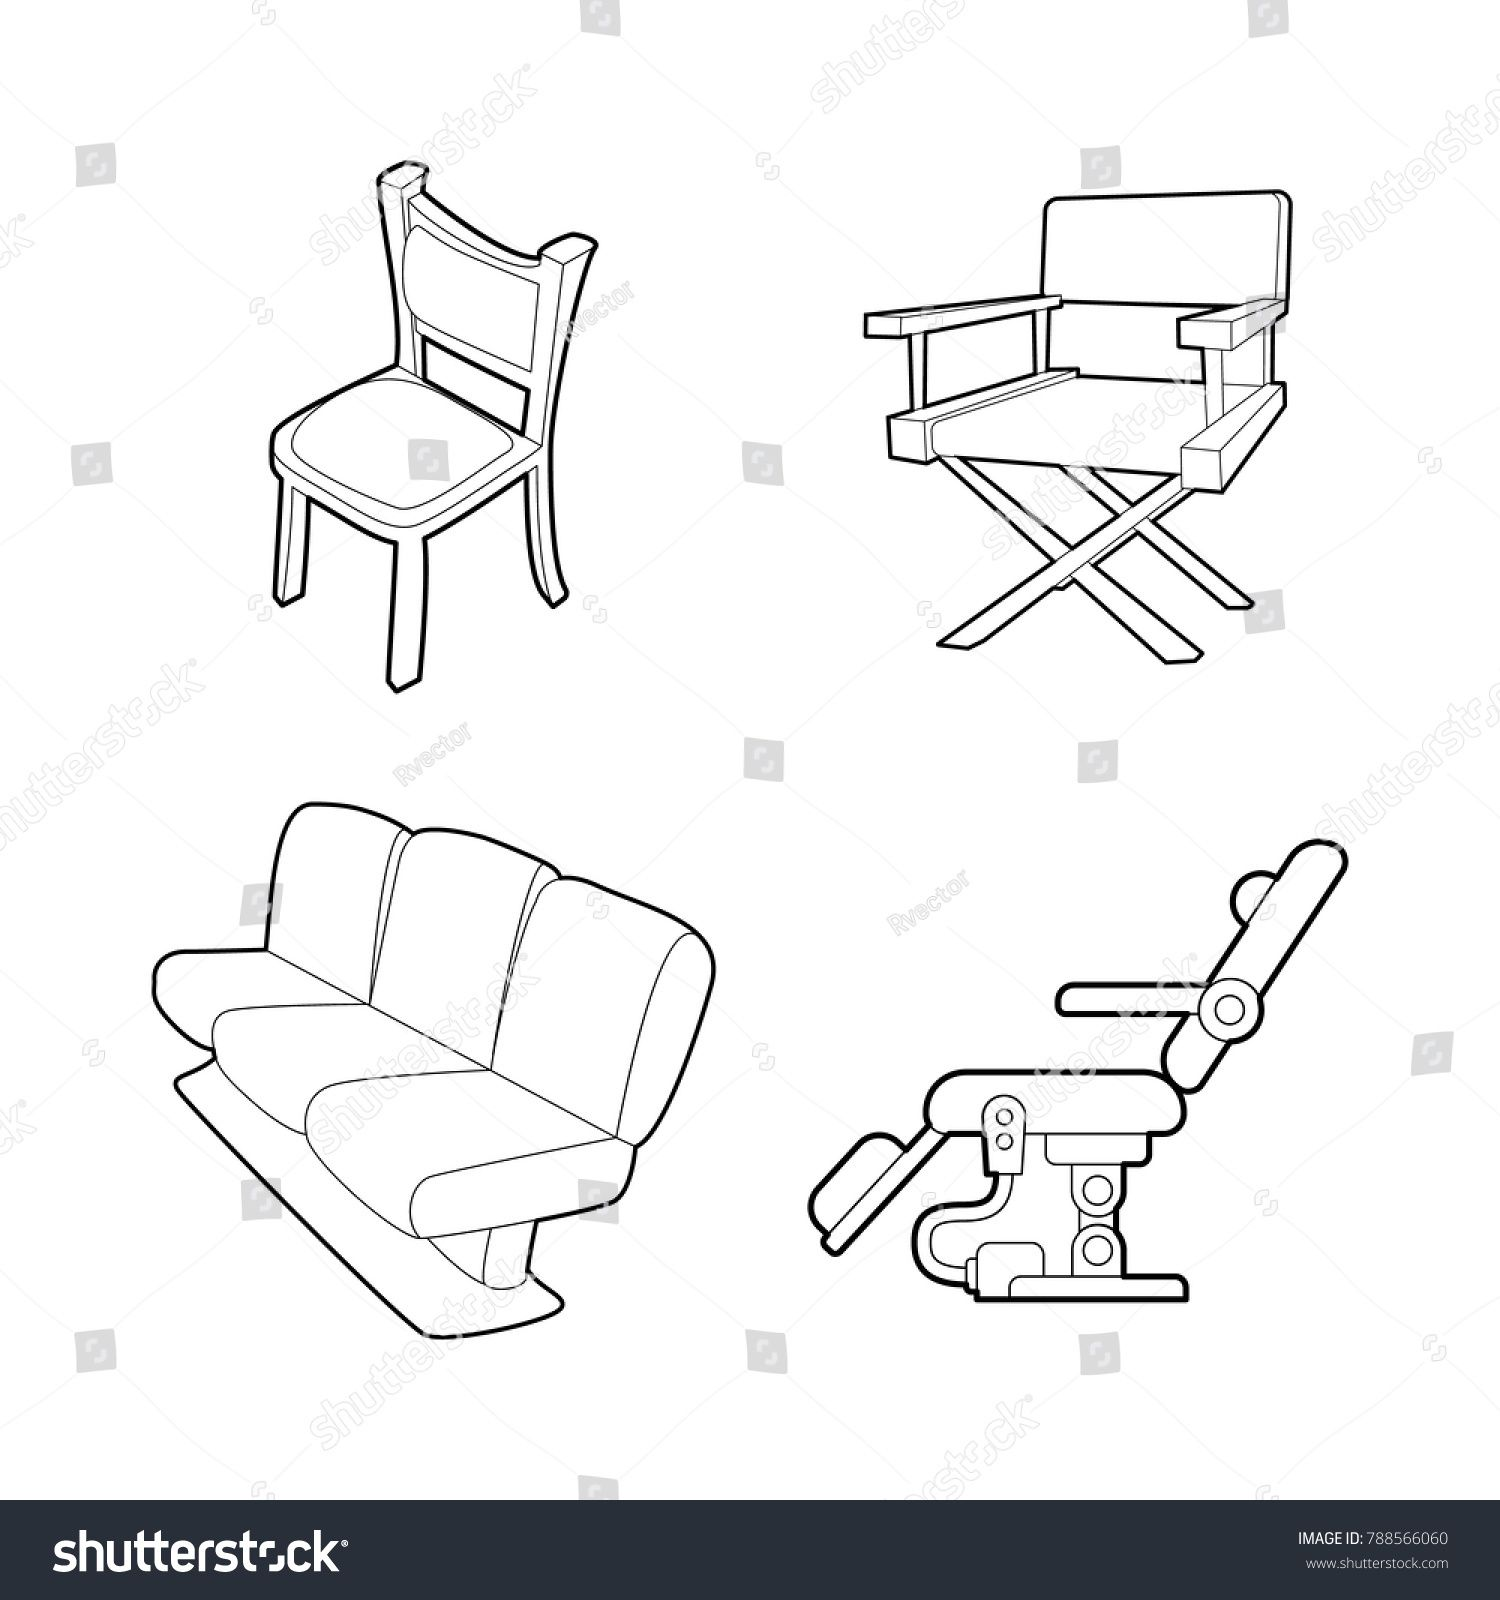 Chair Icon Set Outline Set Of Chair Vector Icons For Web Design Isolated On White Background Ad Ad Outline Chair Vector Chair In 2020 Icon Set Web Design Icon